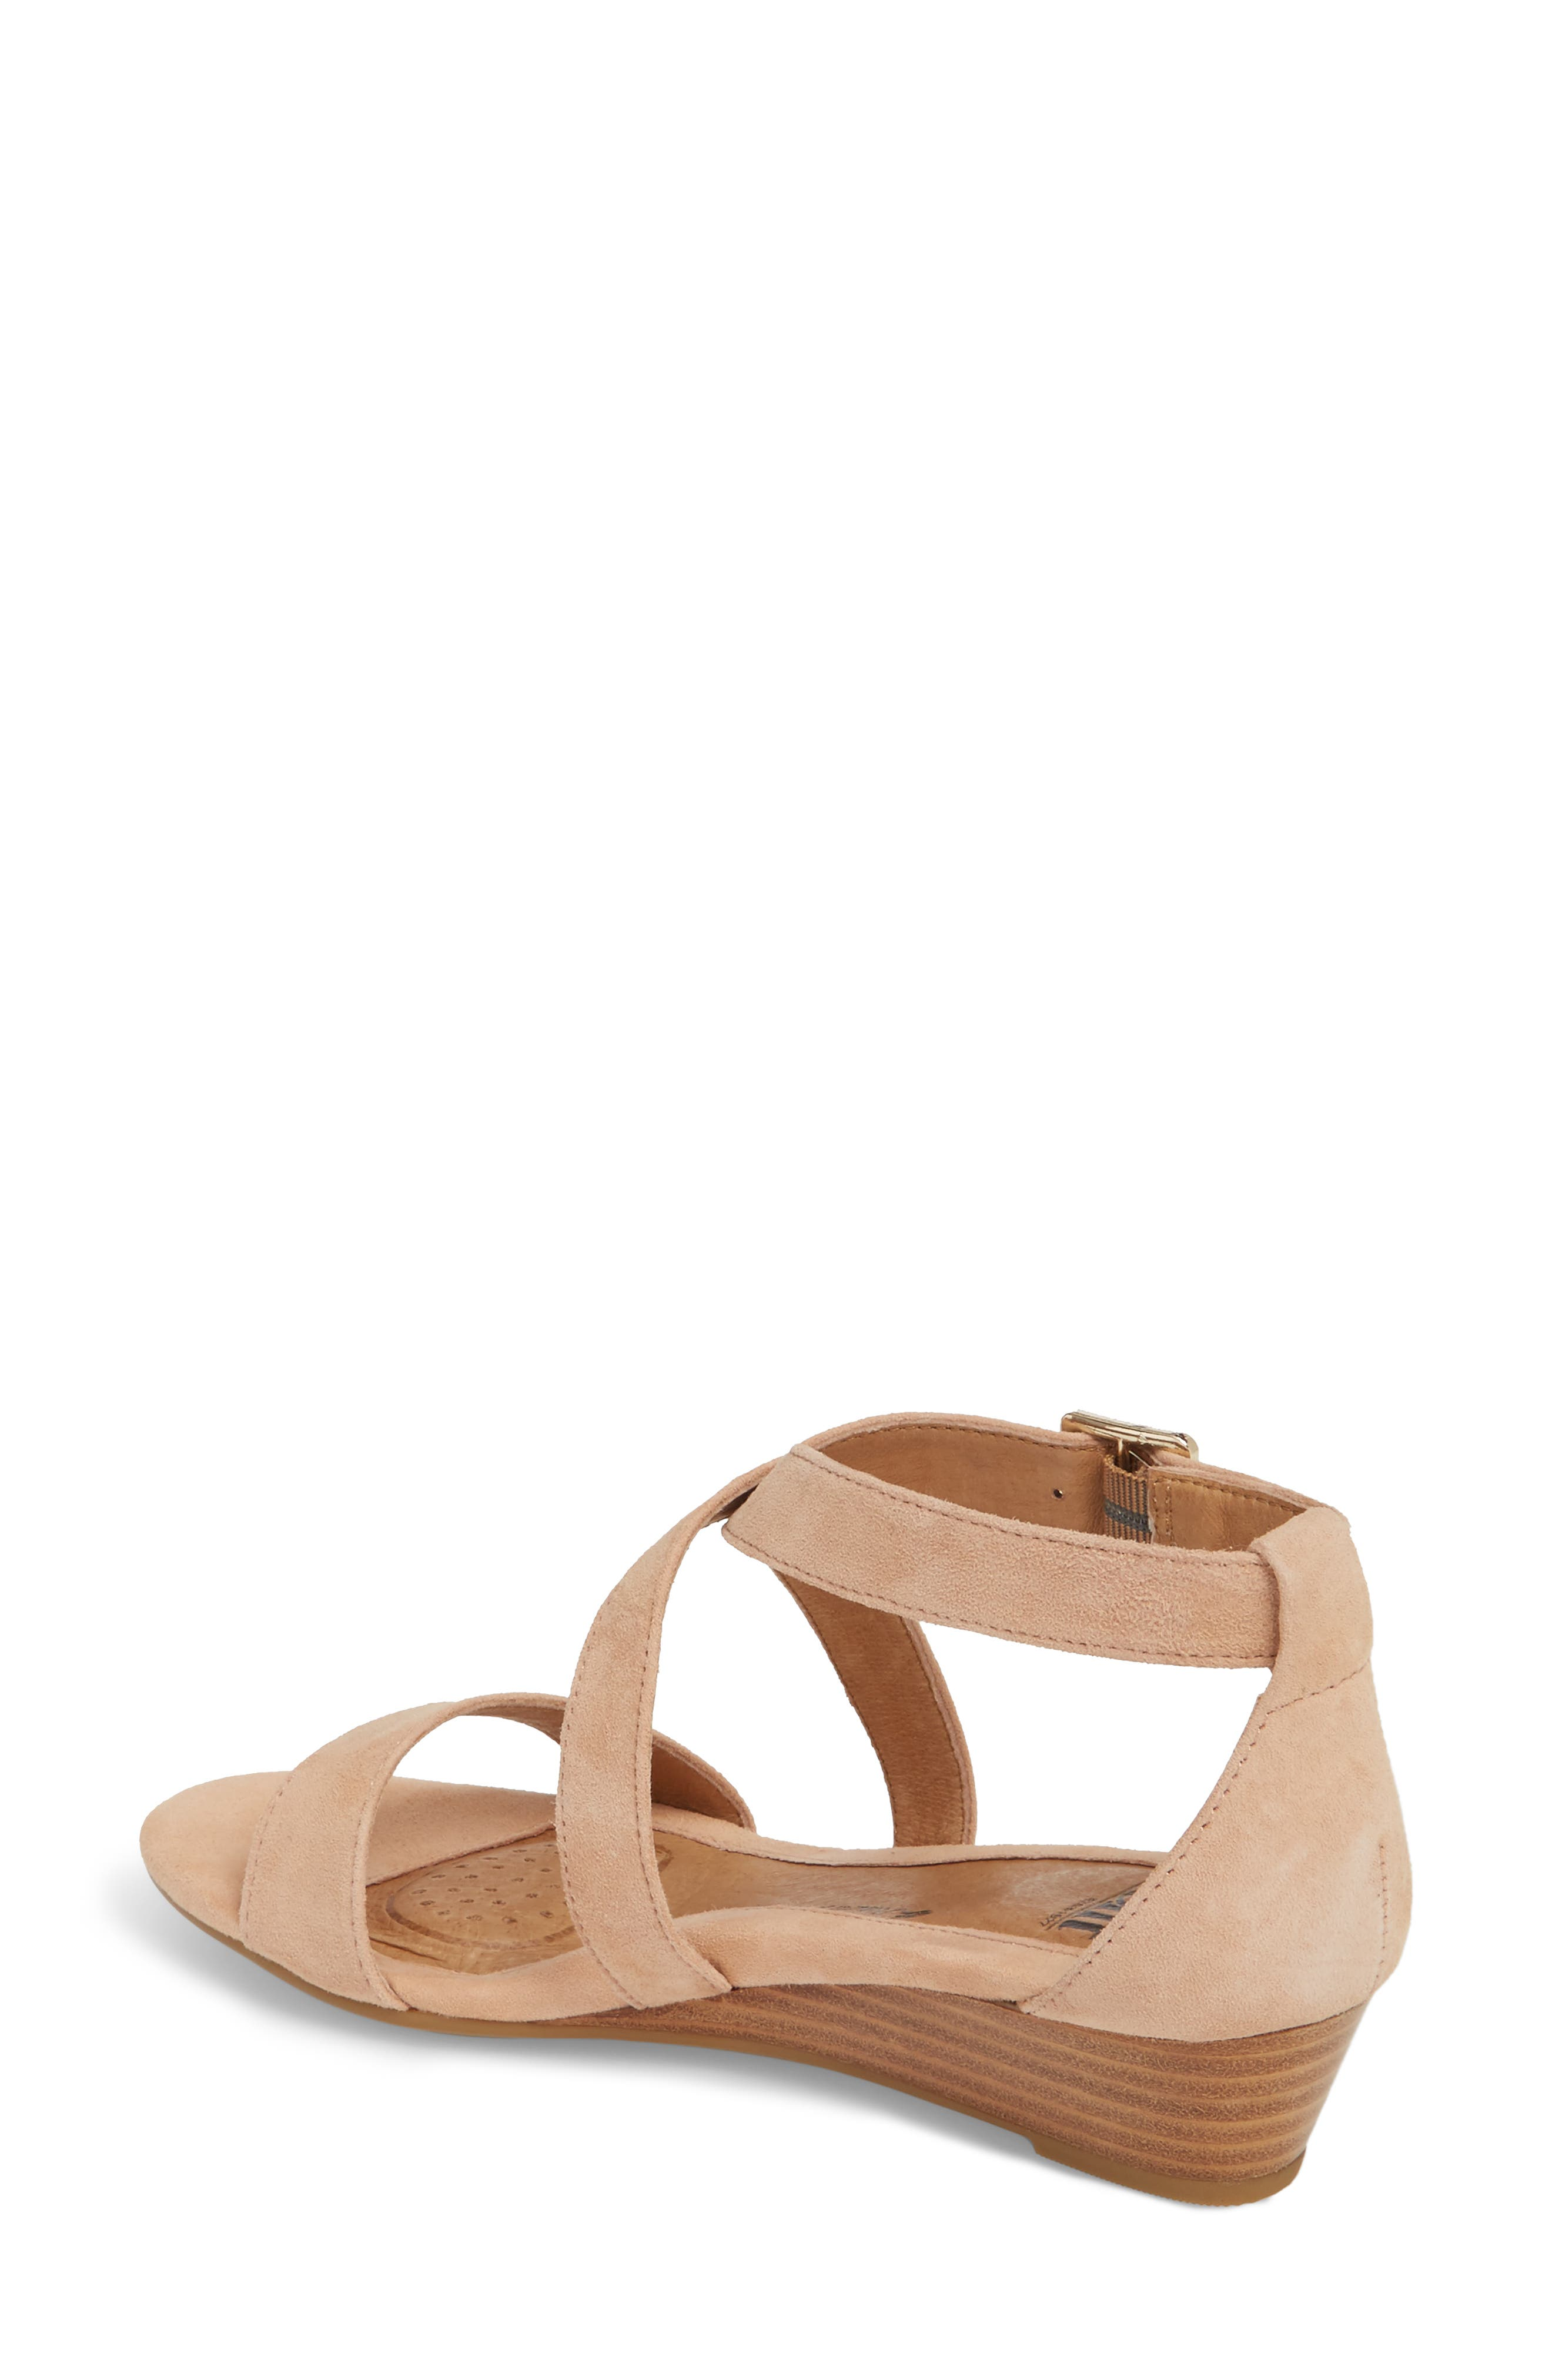 'Innis' Low Wedge Sandal,                             Alternate thumbnail 16, color,